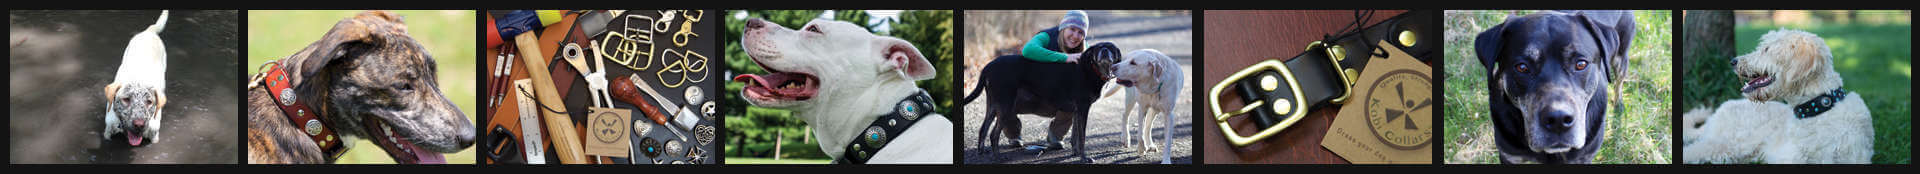 Dog and Collar Collage